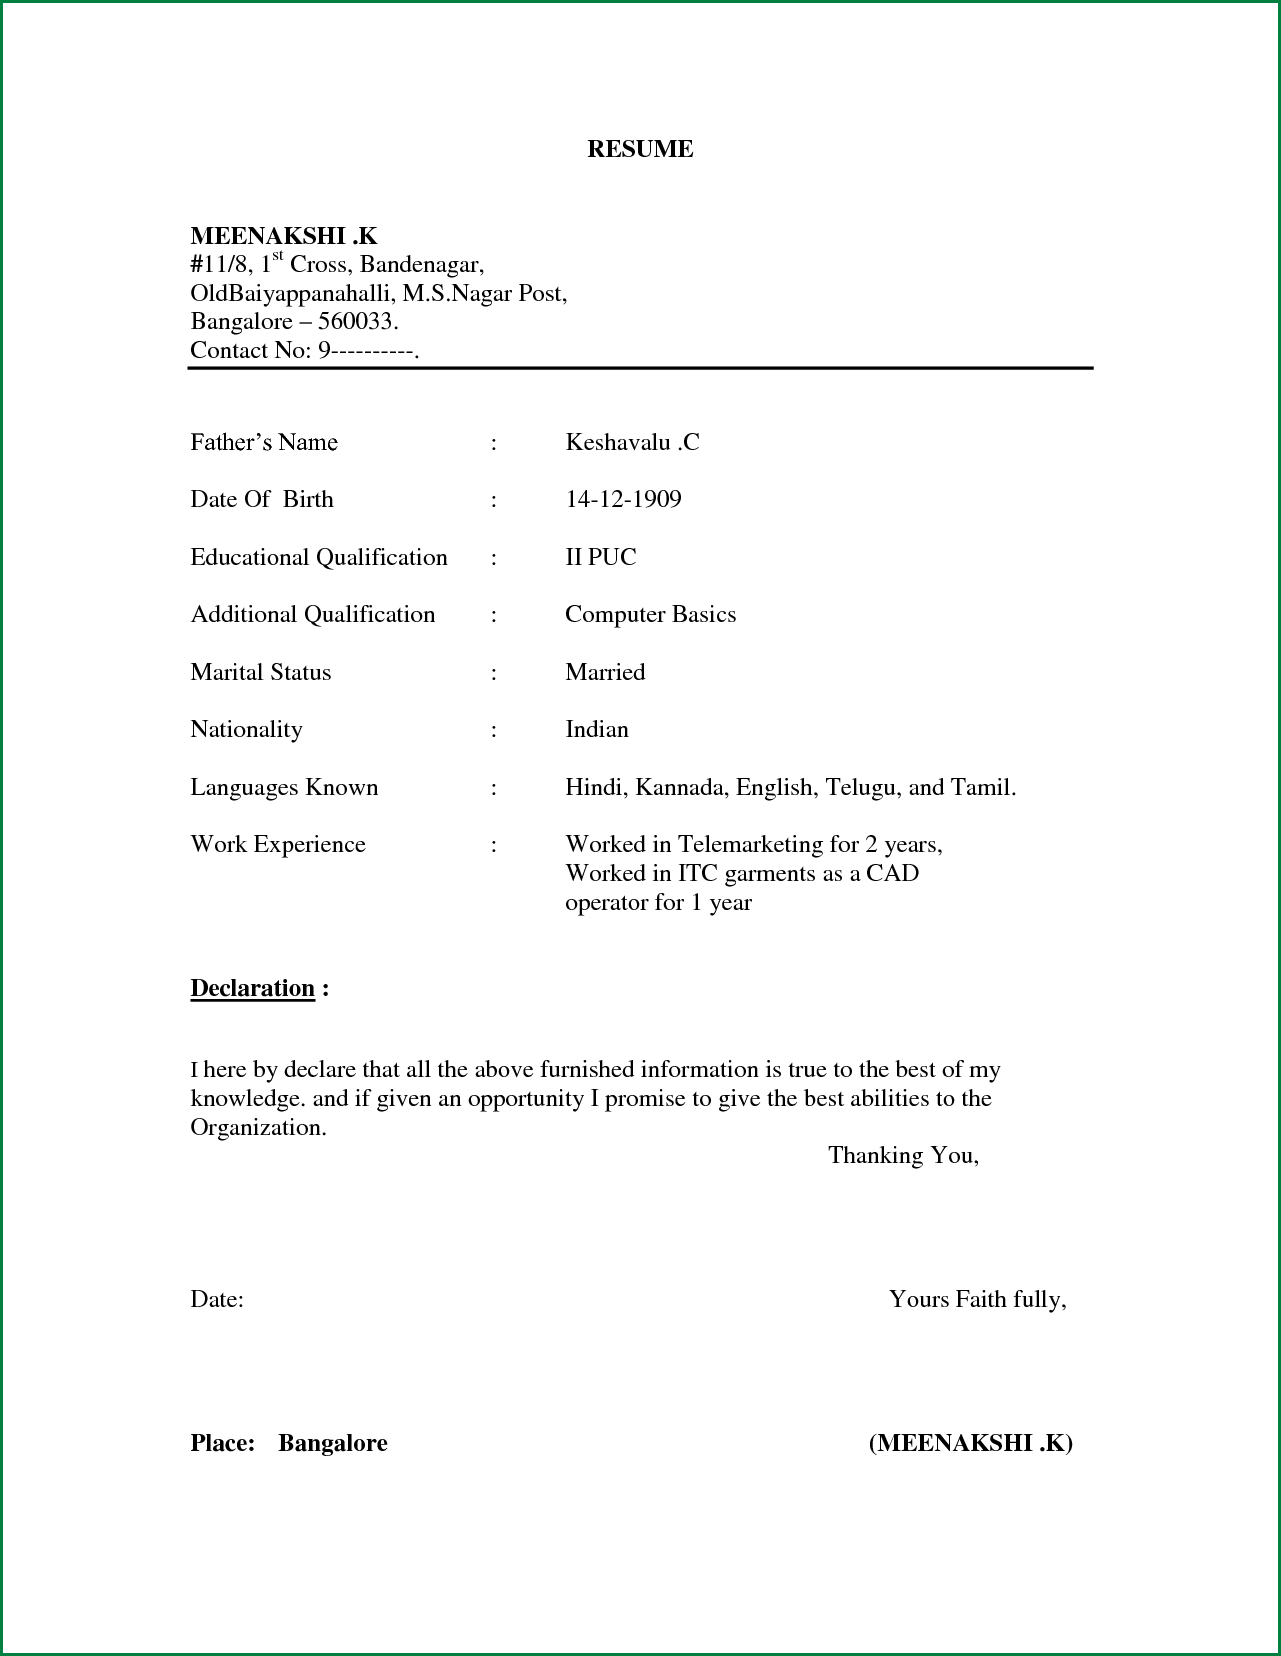 Simple Resume Format For Freshers In Word File.137085913.png